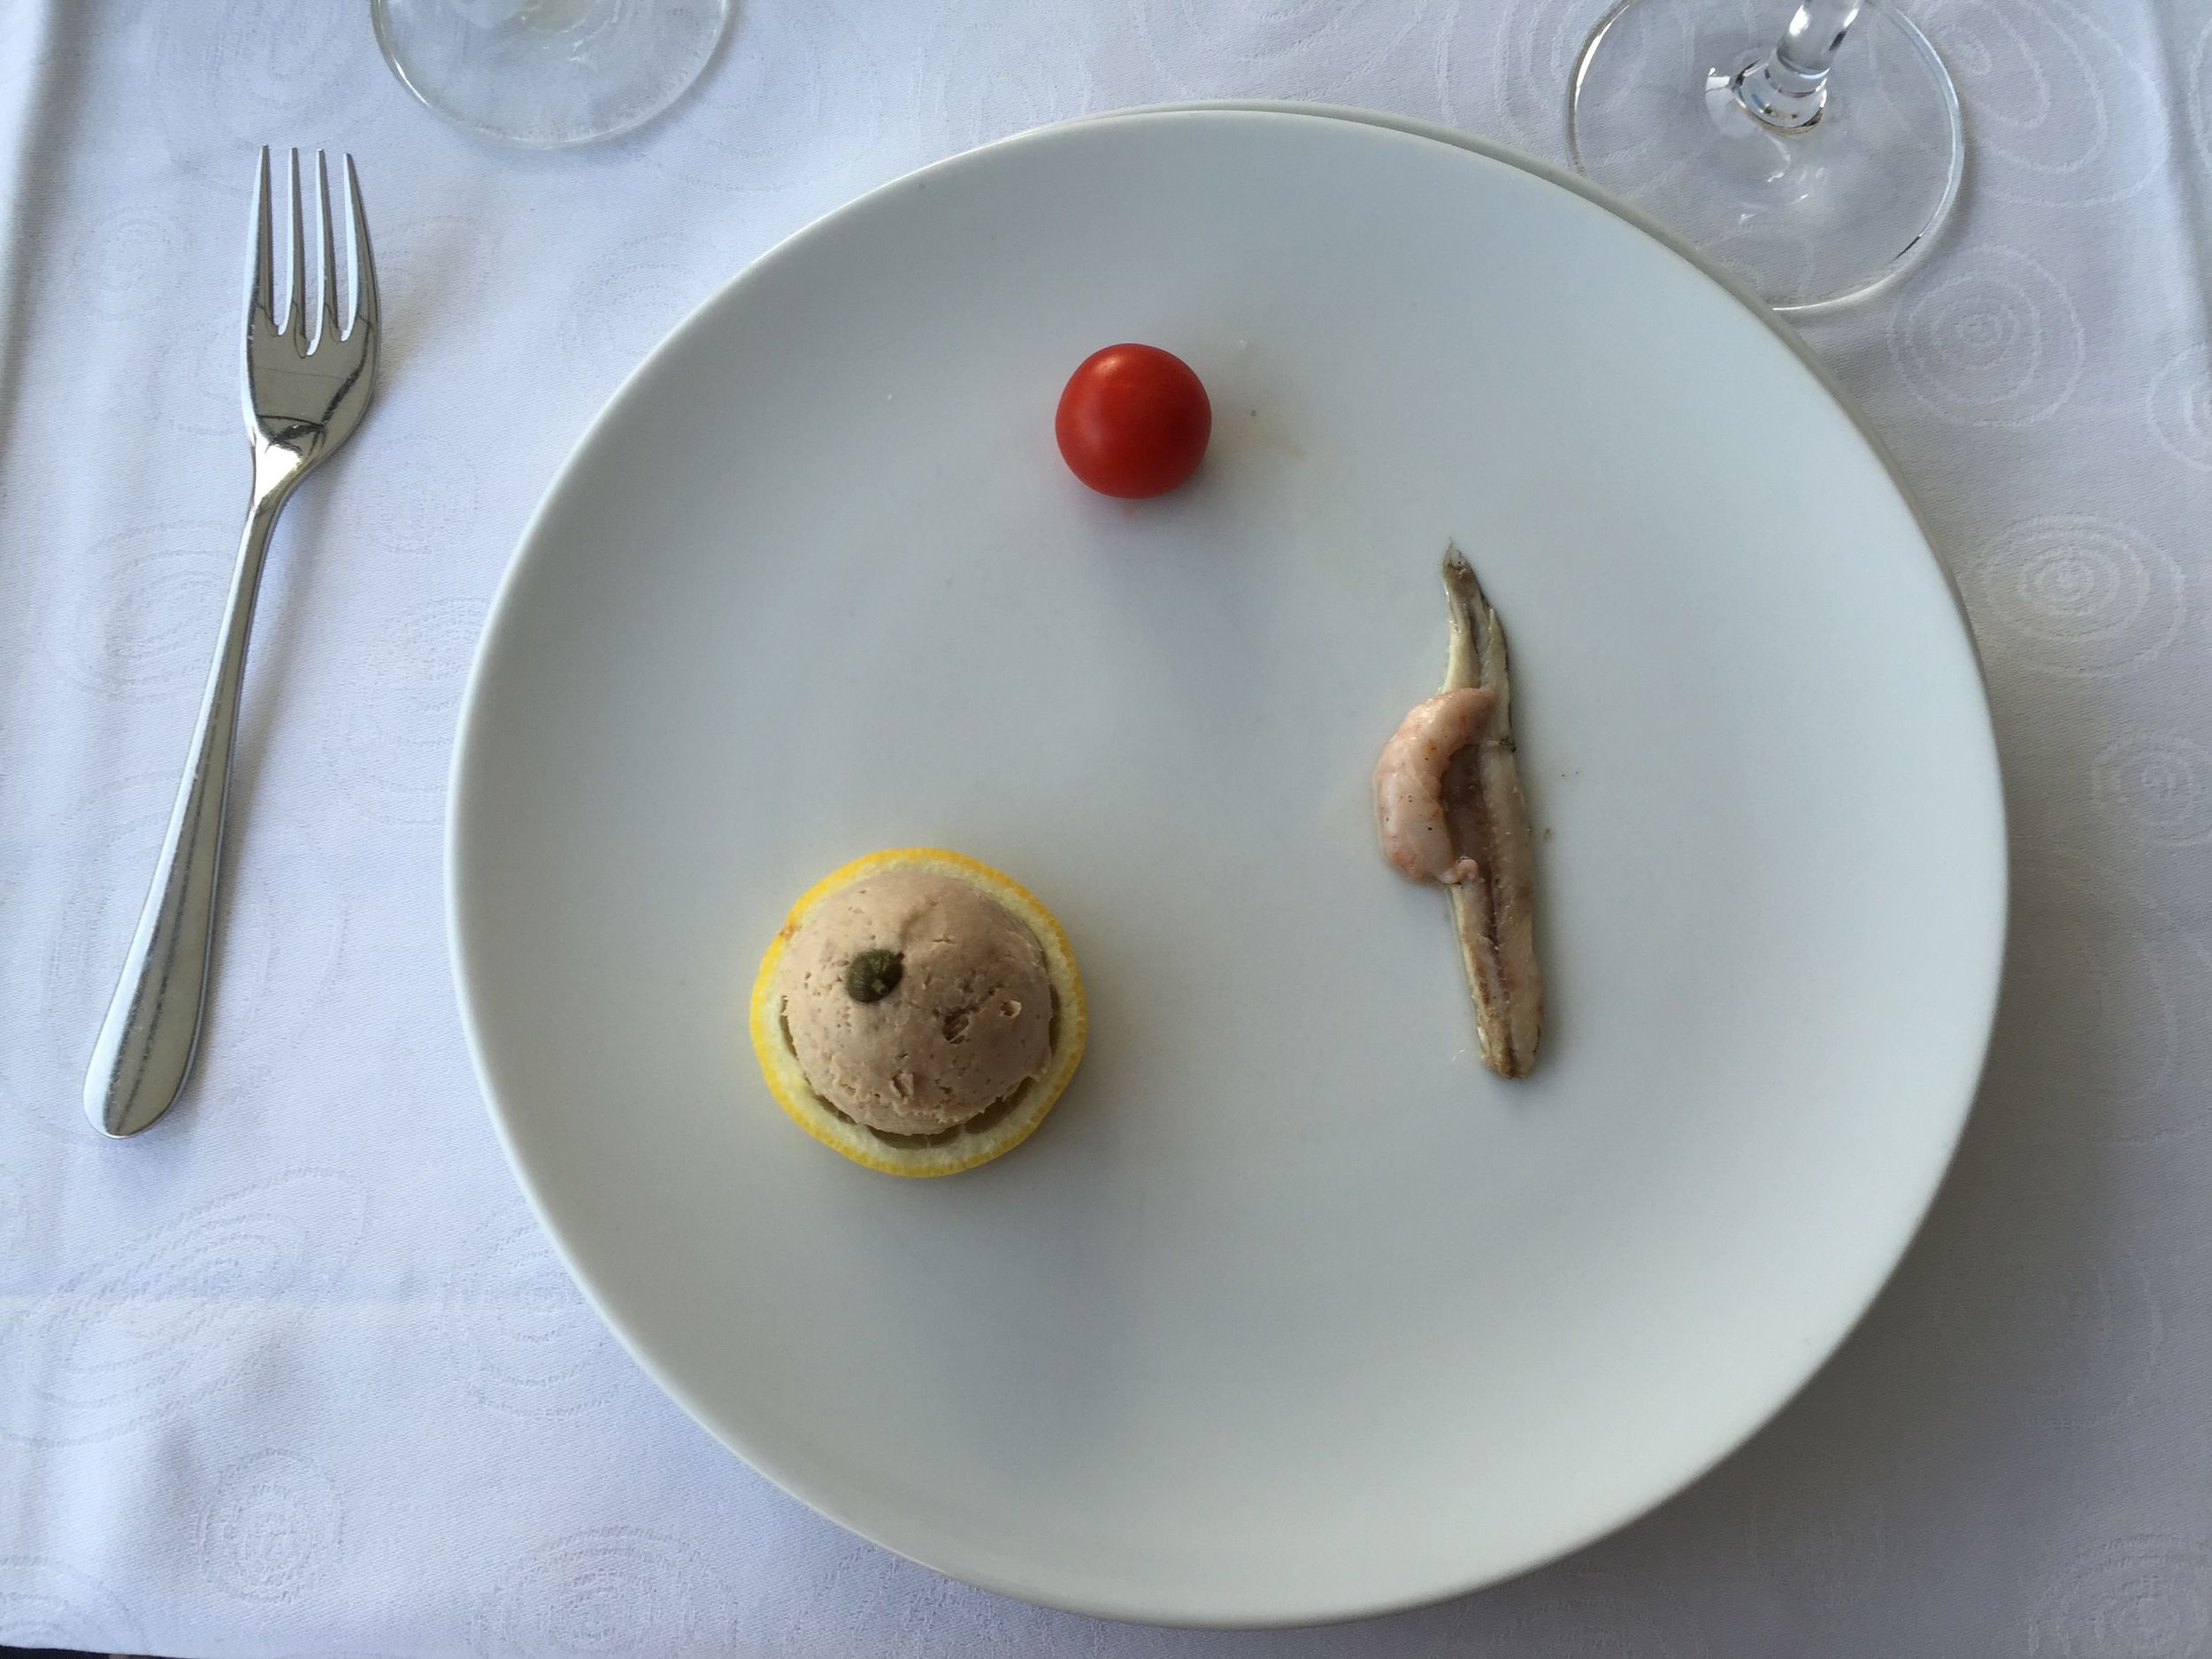 A strangely sparse food presentation in a restaurant in a small village outside Dubrovnik